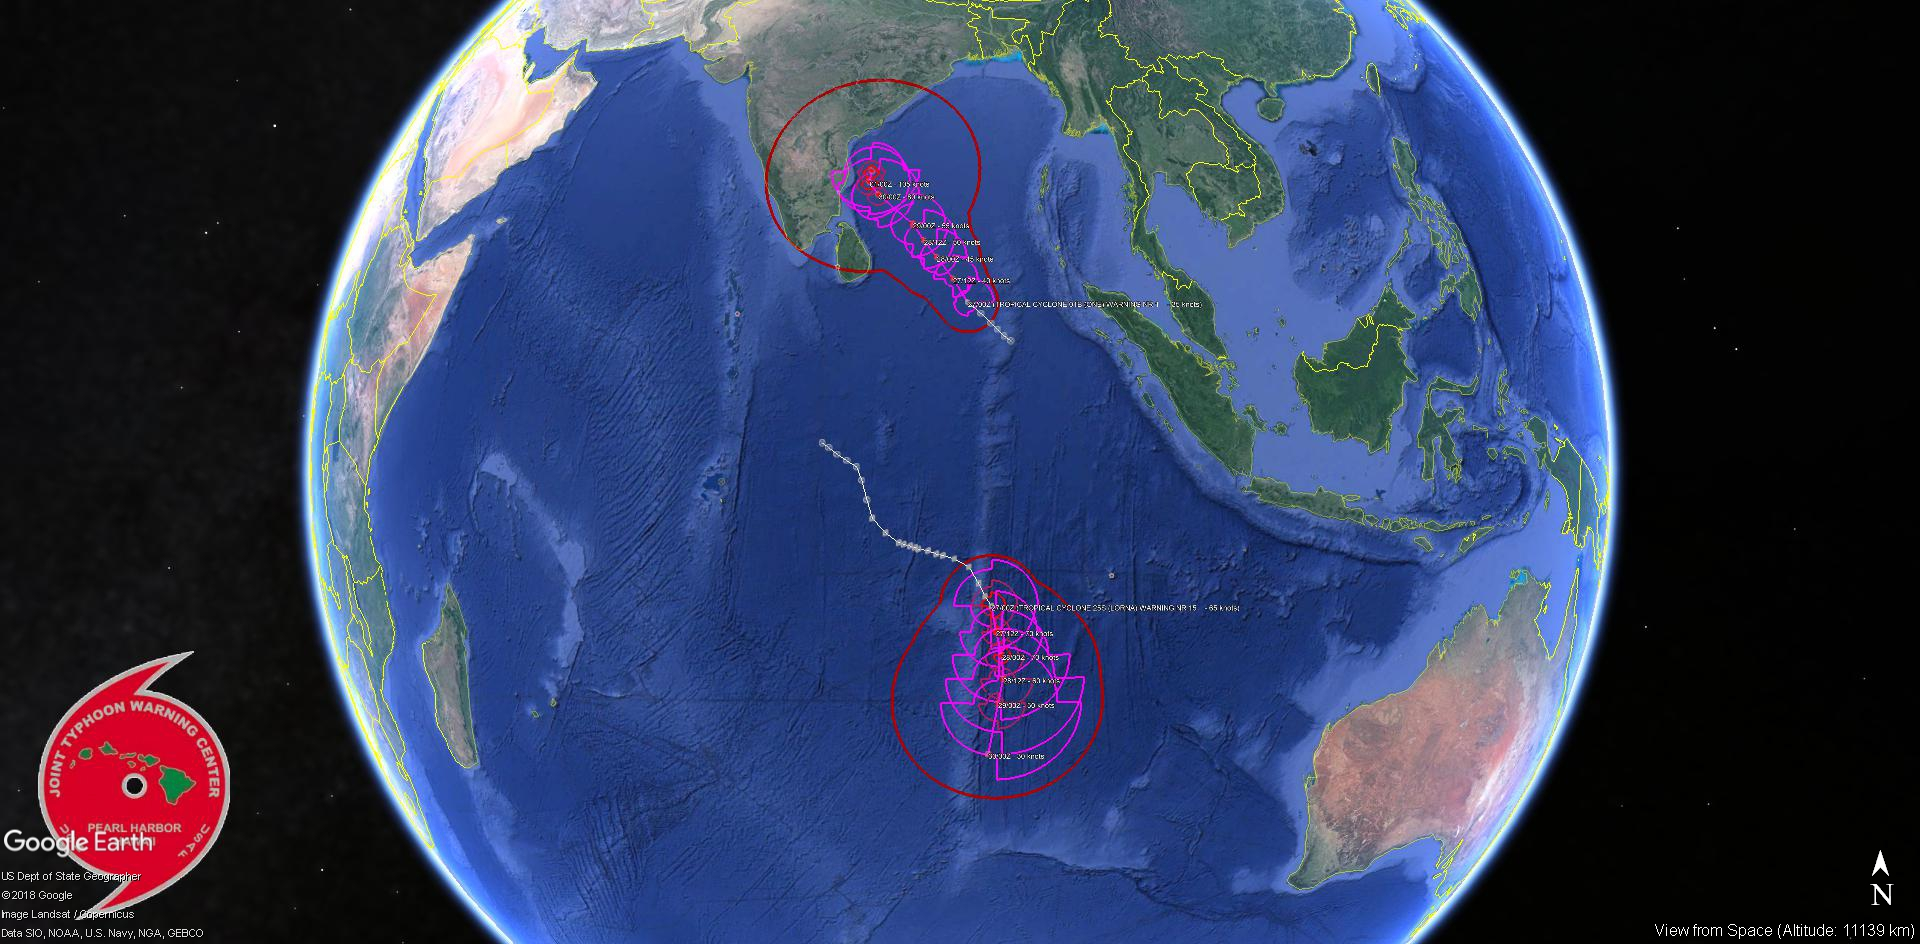 INDIAN OCEAN: TC 01B has formed, forecast to intensify next 4 days. TC LORNA(25S) category 1 intensity to peak next 24hours